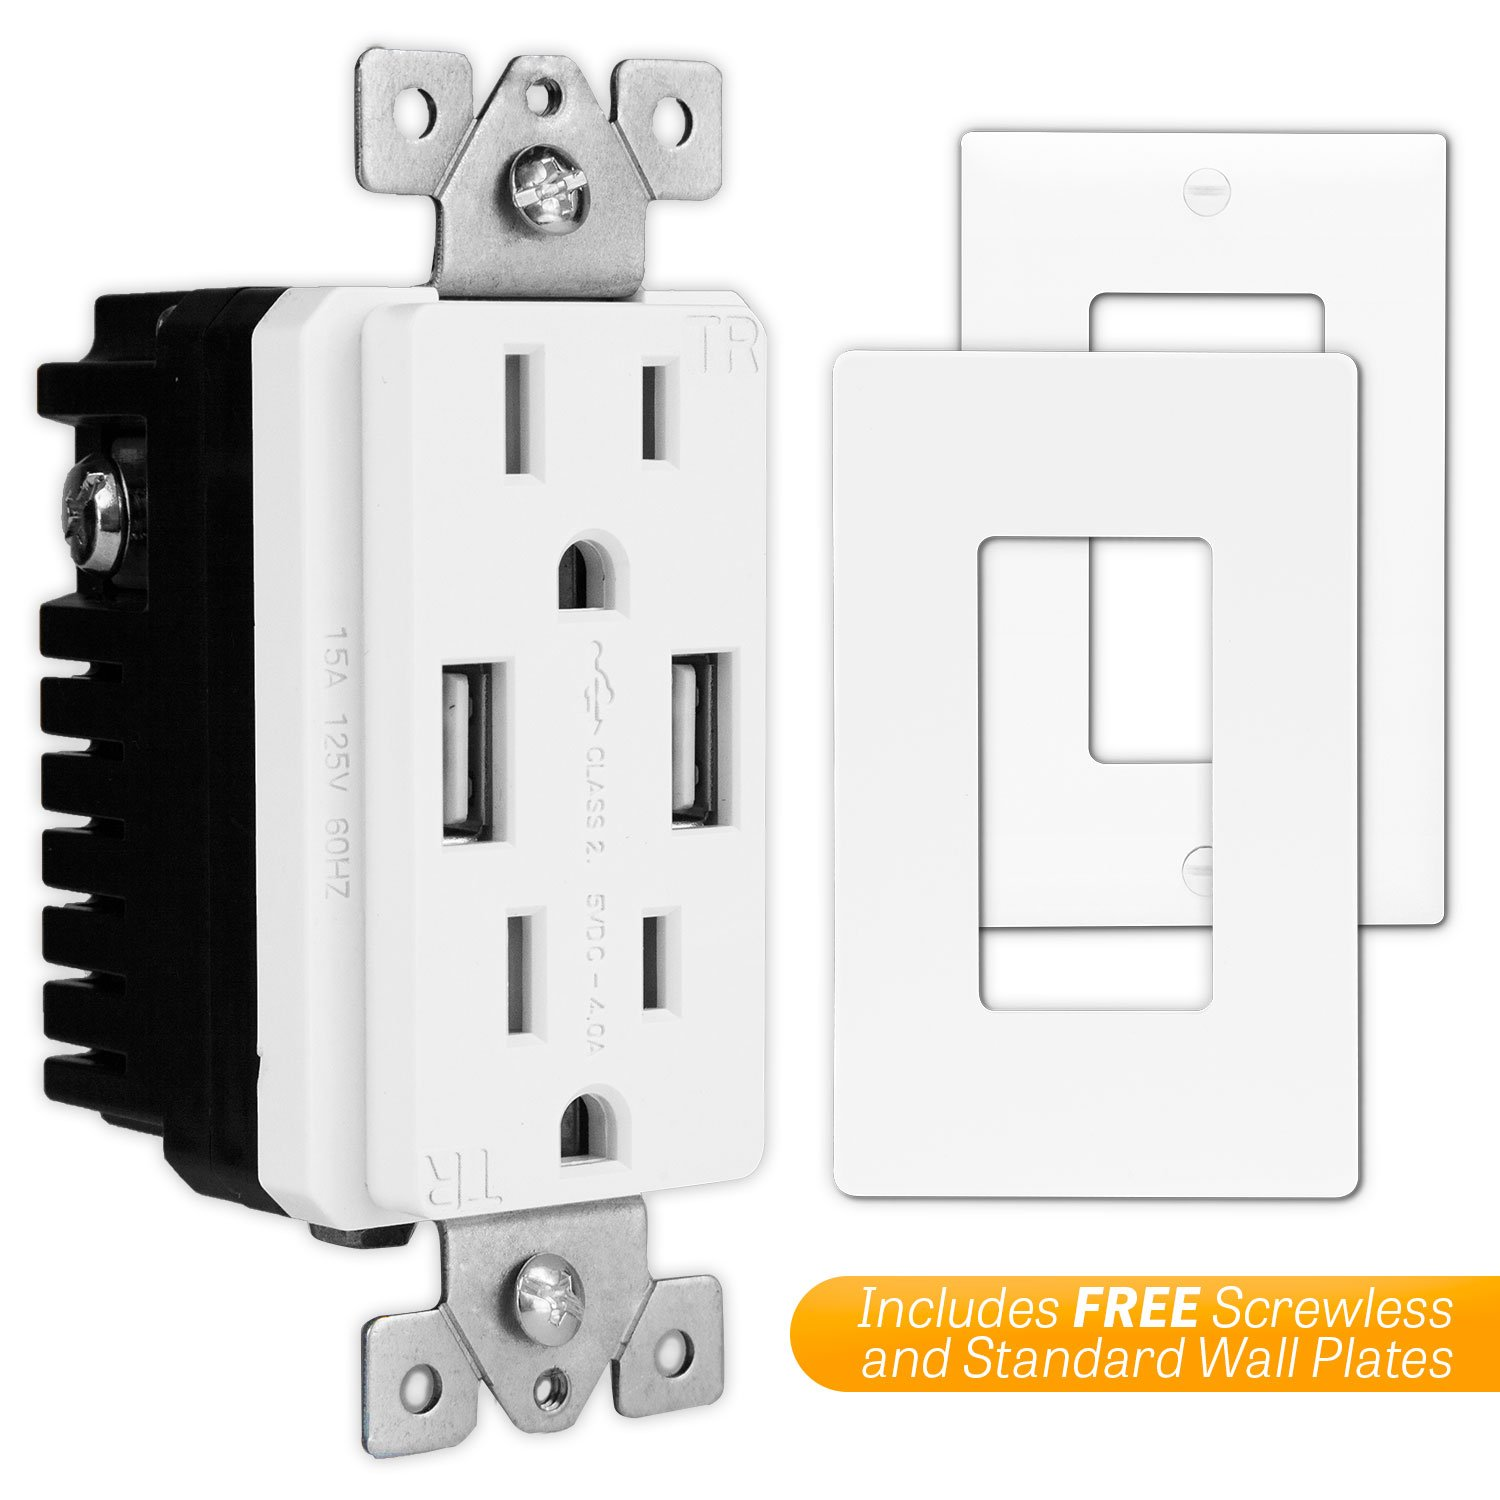 TOPGREENER TU2154A High Speed USB Charger Outlet, USB Wall Charger, Electrical Outlet with USB, 15A TR Receptacle, Screwless Wall Plate, for iPhone X, iPhone 8/8 Plus, Samsung Galaxy and more, White by TOPGREENER (Image #2)